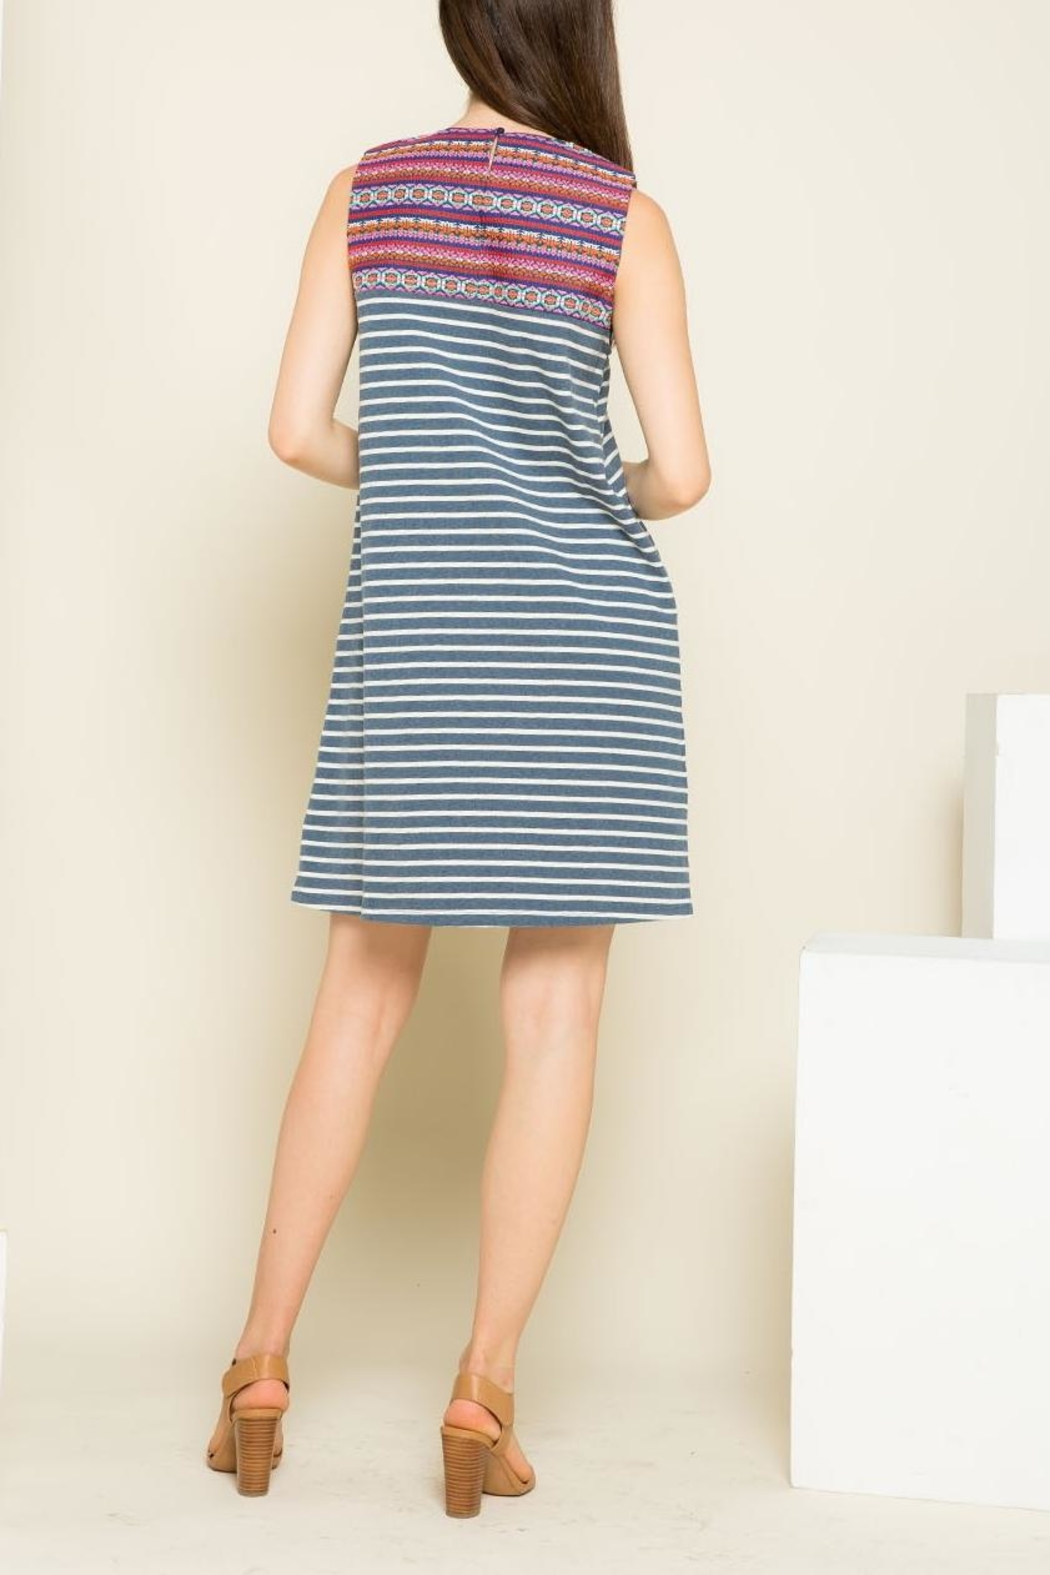 THML Clothing Striped Embroidered Dress - Side Cropped Image